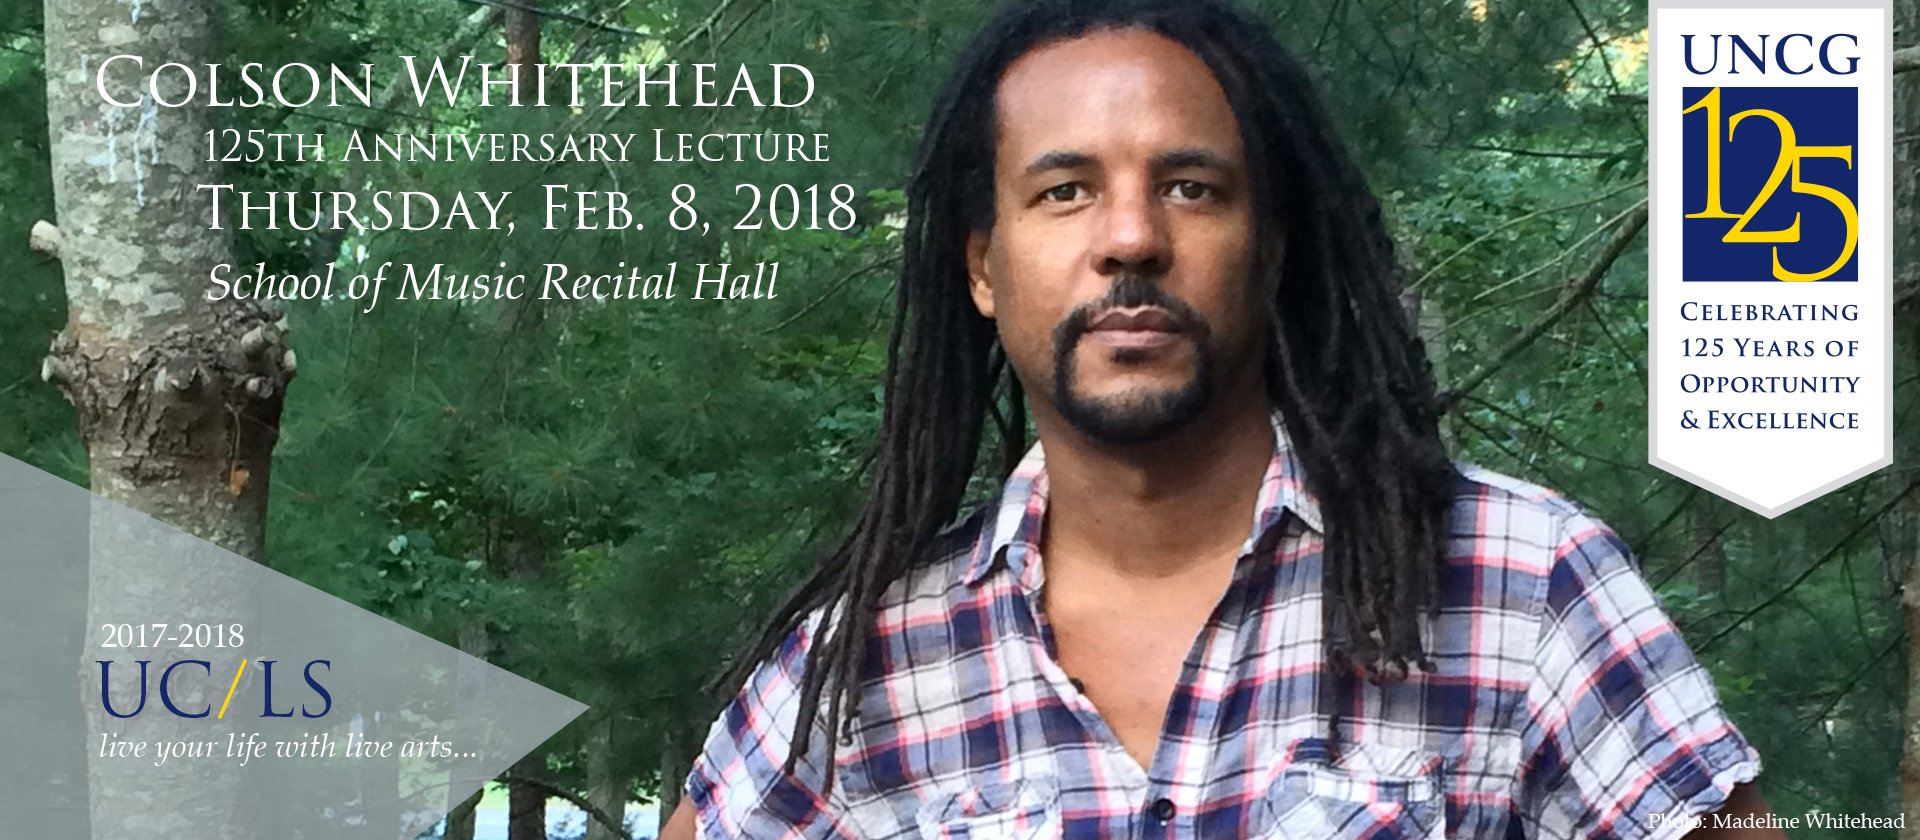 @colsonwhitehead gives 125th Ann. lecture in Feb. Free but limited seating! #blackhistory #ucls #uncgarts #uncg125 https://t.co/tpQ7jcudGt https://t.co/mmAQCTF1L0